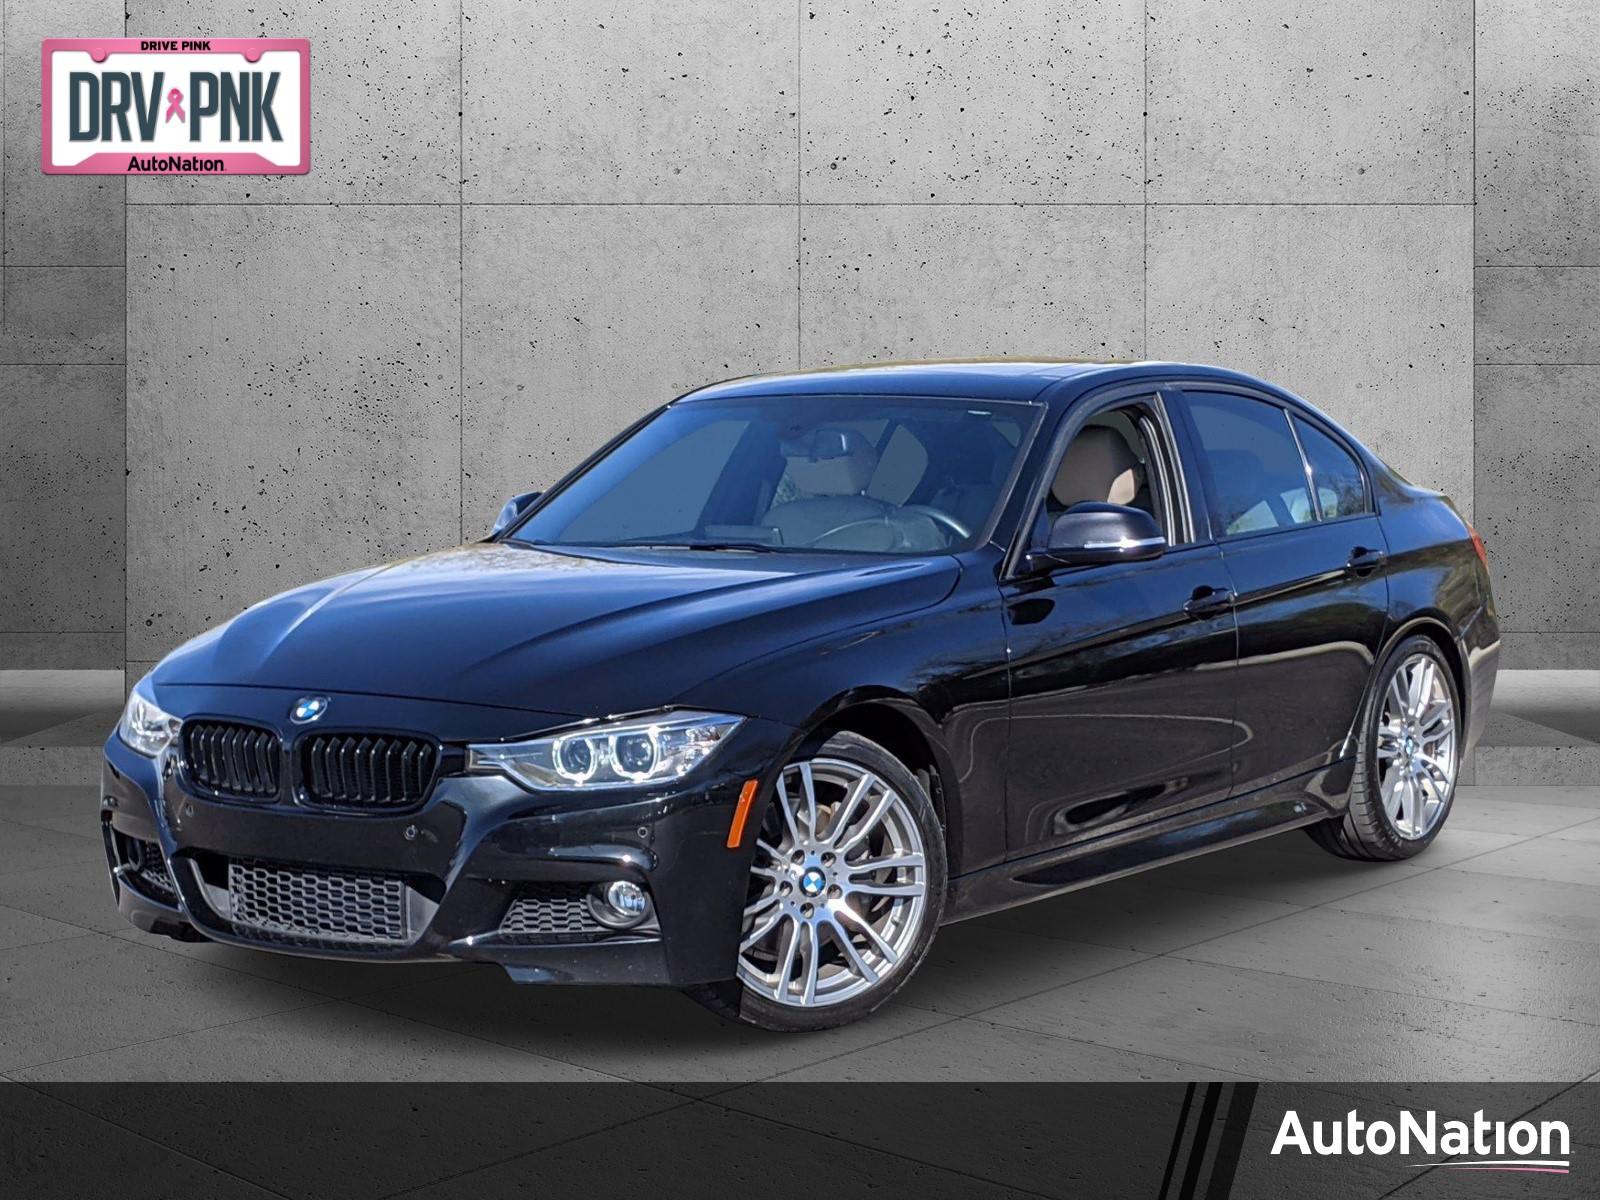 Pre Owned Bmw Vehicles For Sale In Tucson Az